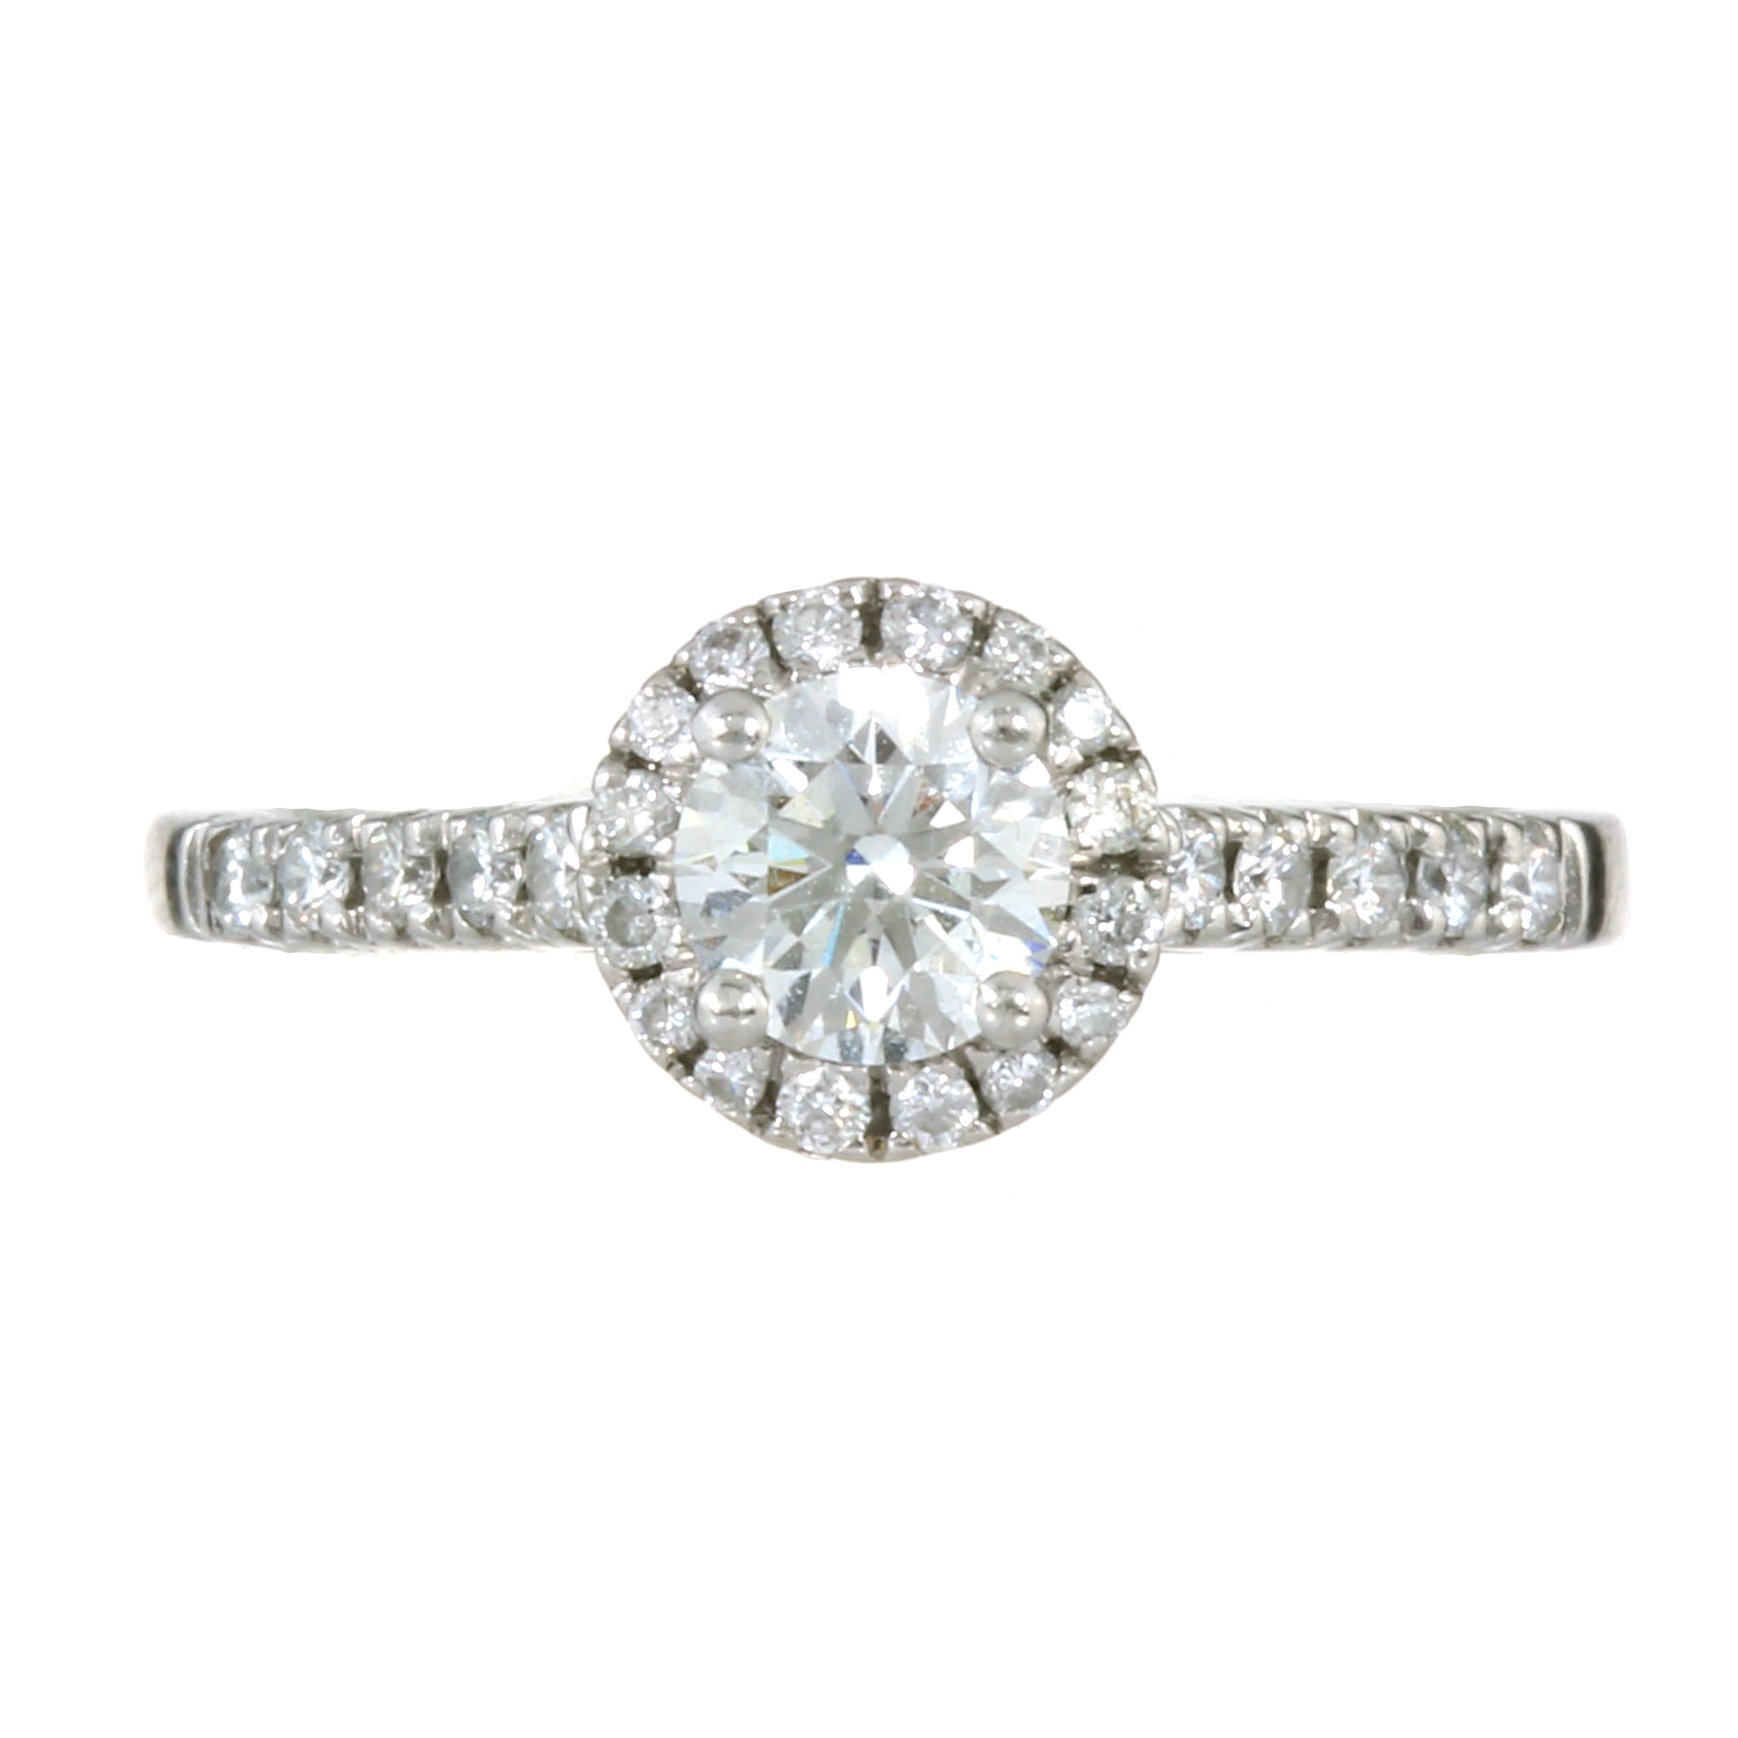 Los 25 - A 0.50 CARAT SOLITAIRE DIAMOND HALO ENGAGEMENT RING in platinum set with a round brilliant cut